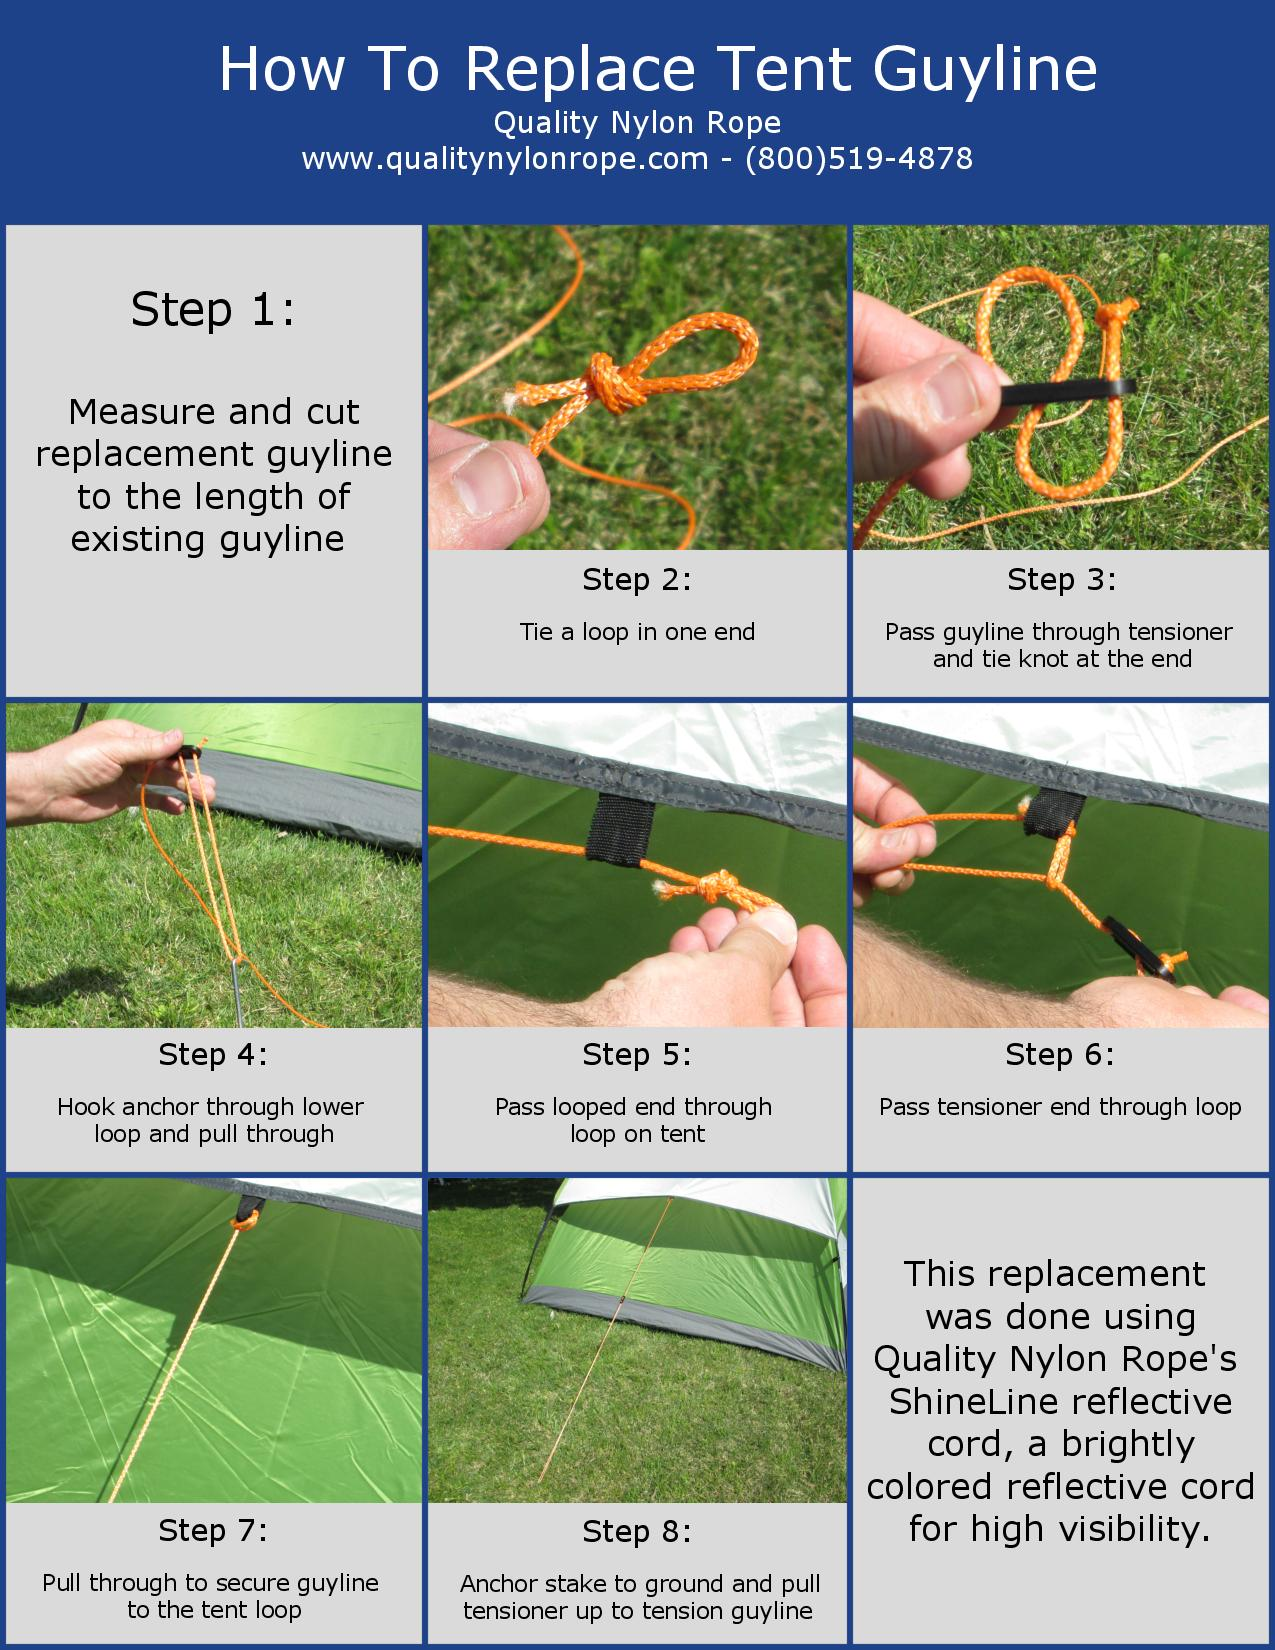 How to Replace a Tent Guyline (Infographic) - QNR  sc 1 st  Quality Nylon Rope & How to Replace a Tent Guyline (Video + Infographic) - Quality ...